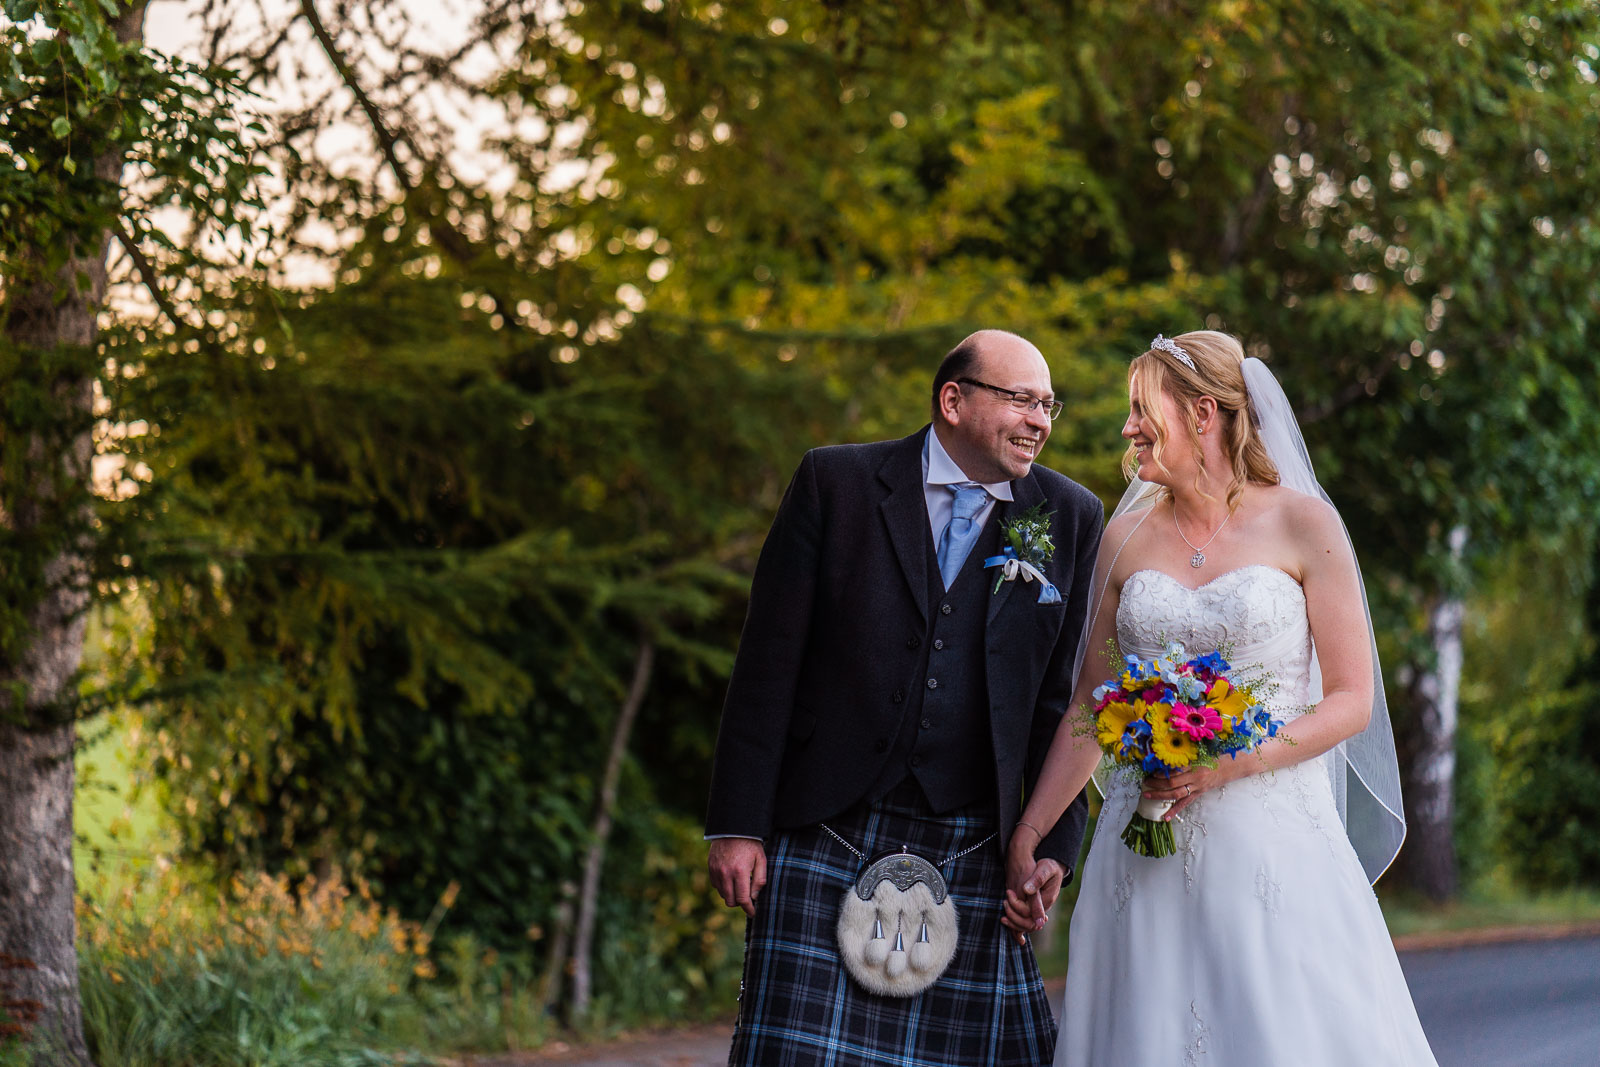 dalhousie_castle_wedding_edinburgh_dearlyphotography (242 of 371).jpg